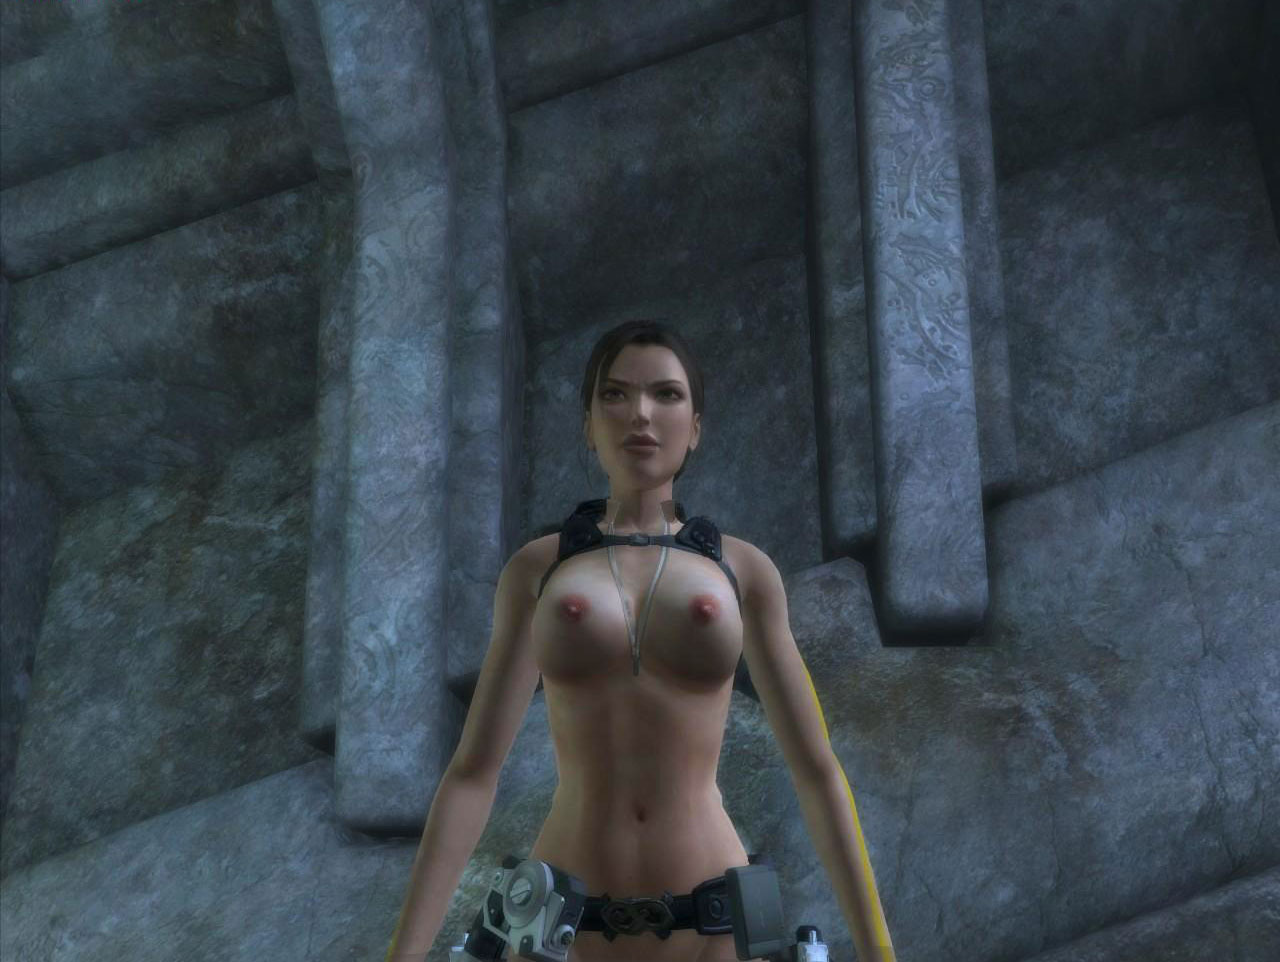 Tomb raider 2o13 naked free cheats cartoon scenes